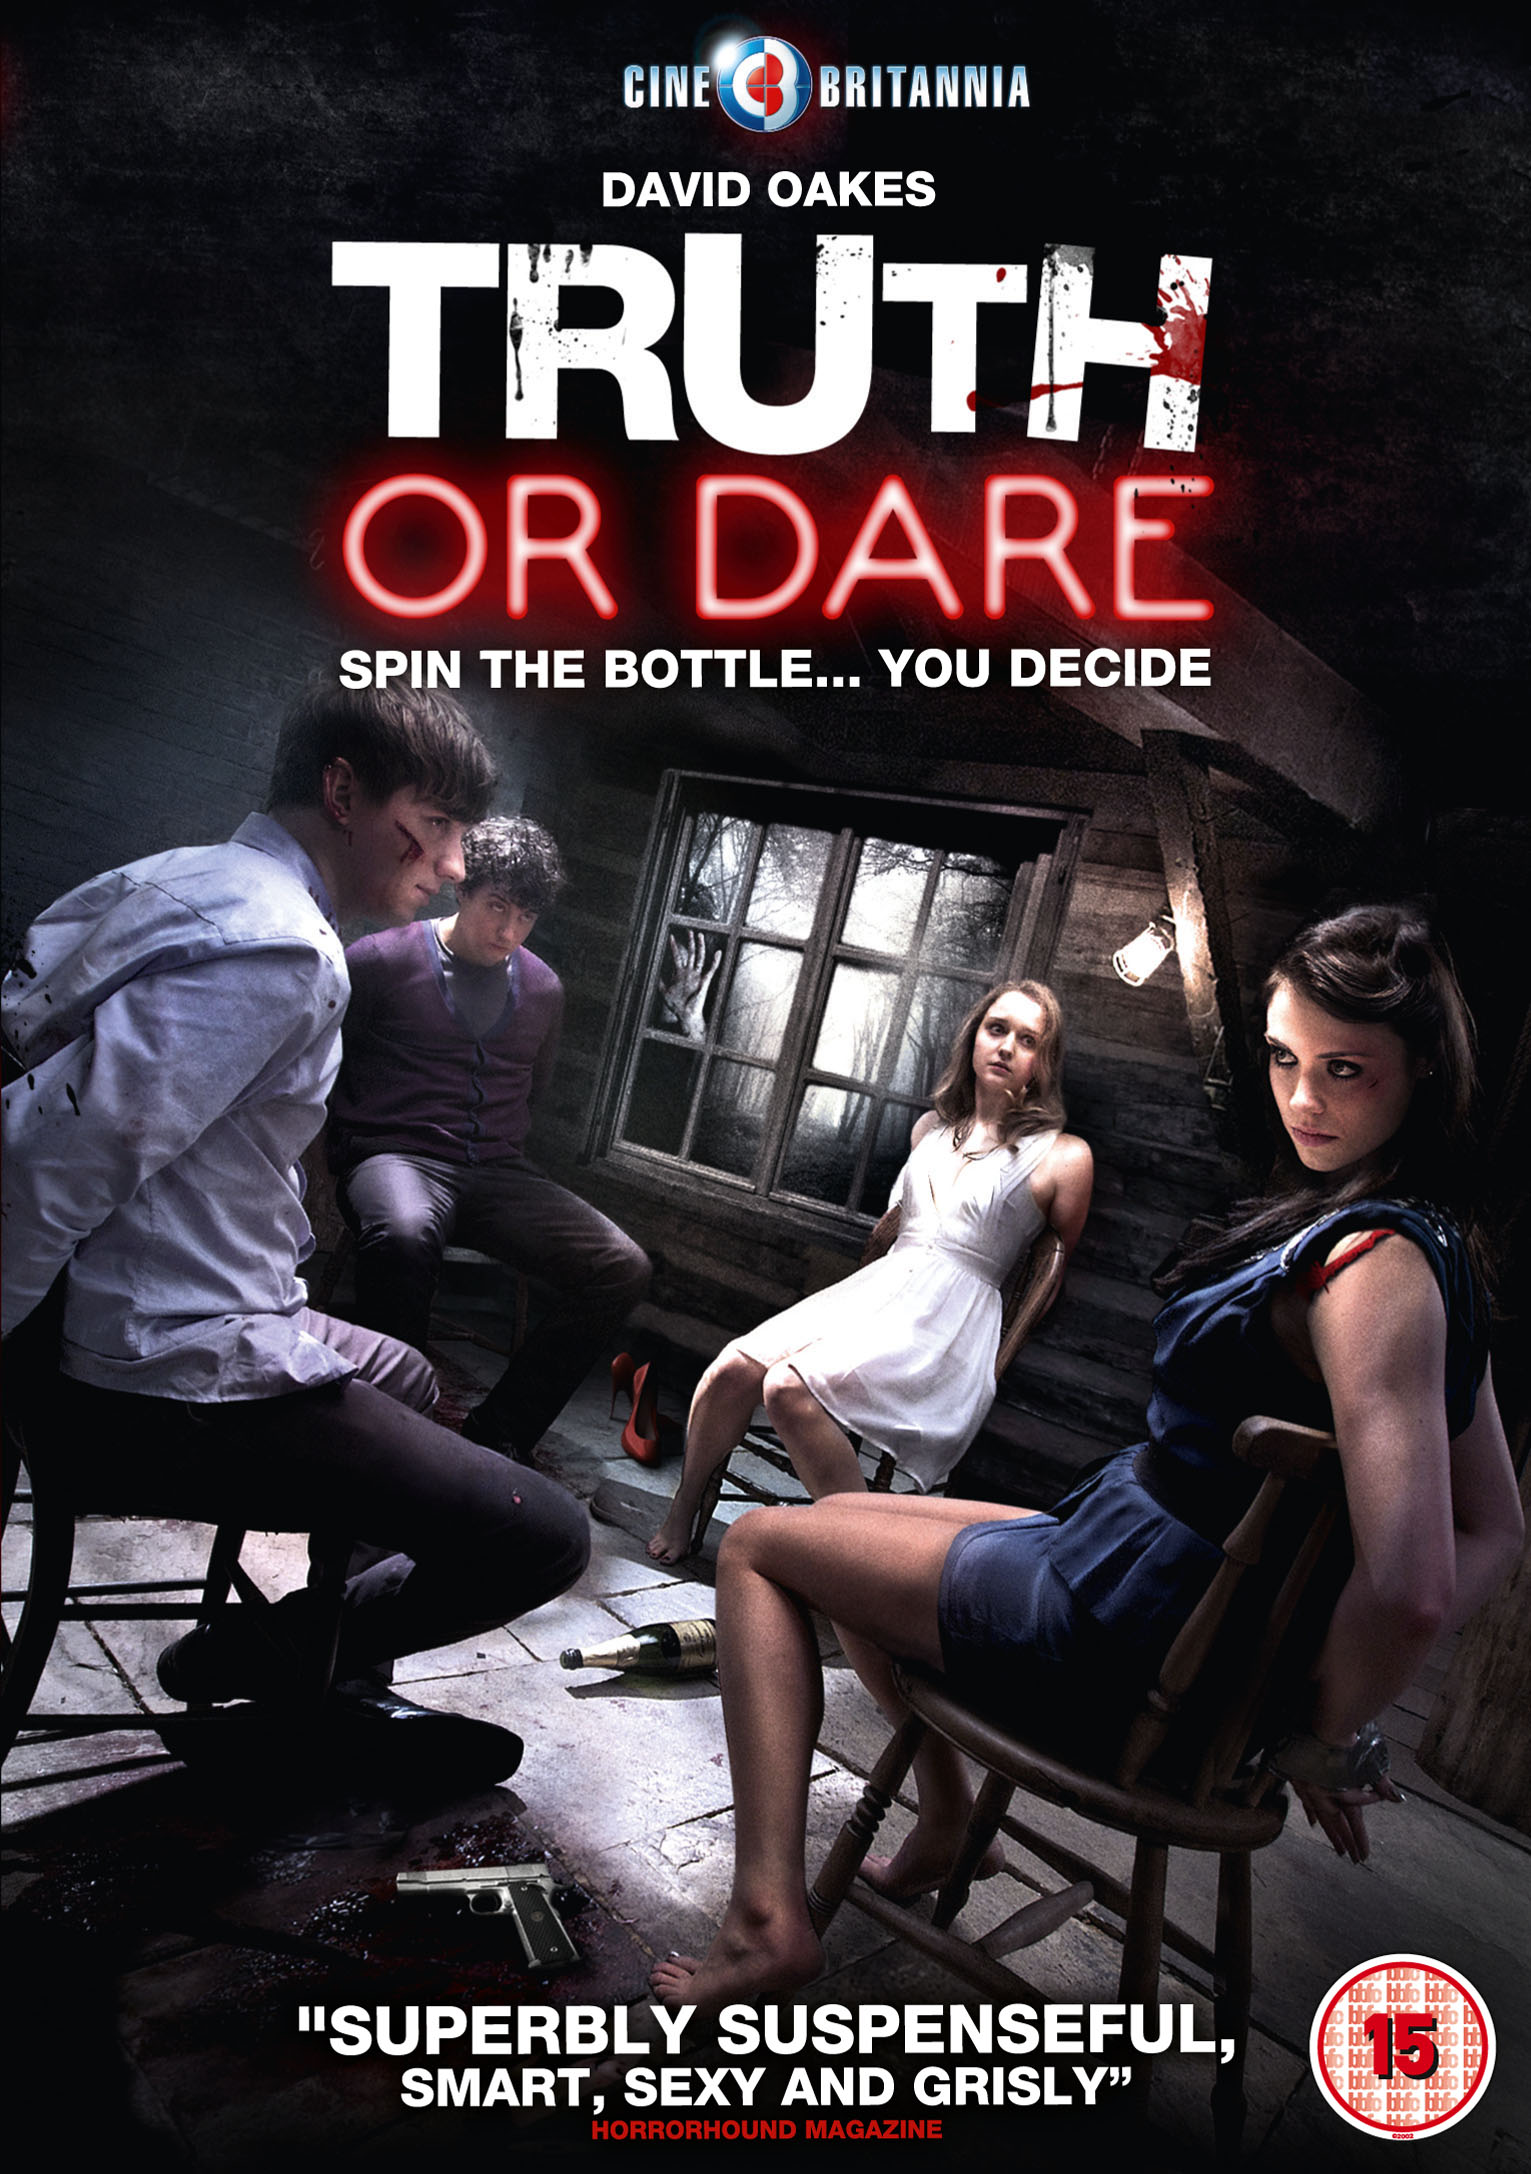 adult truth or dare online game jpg 1200x900